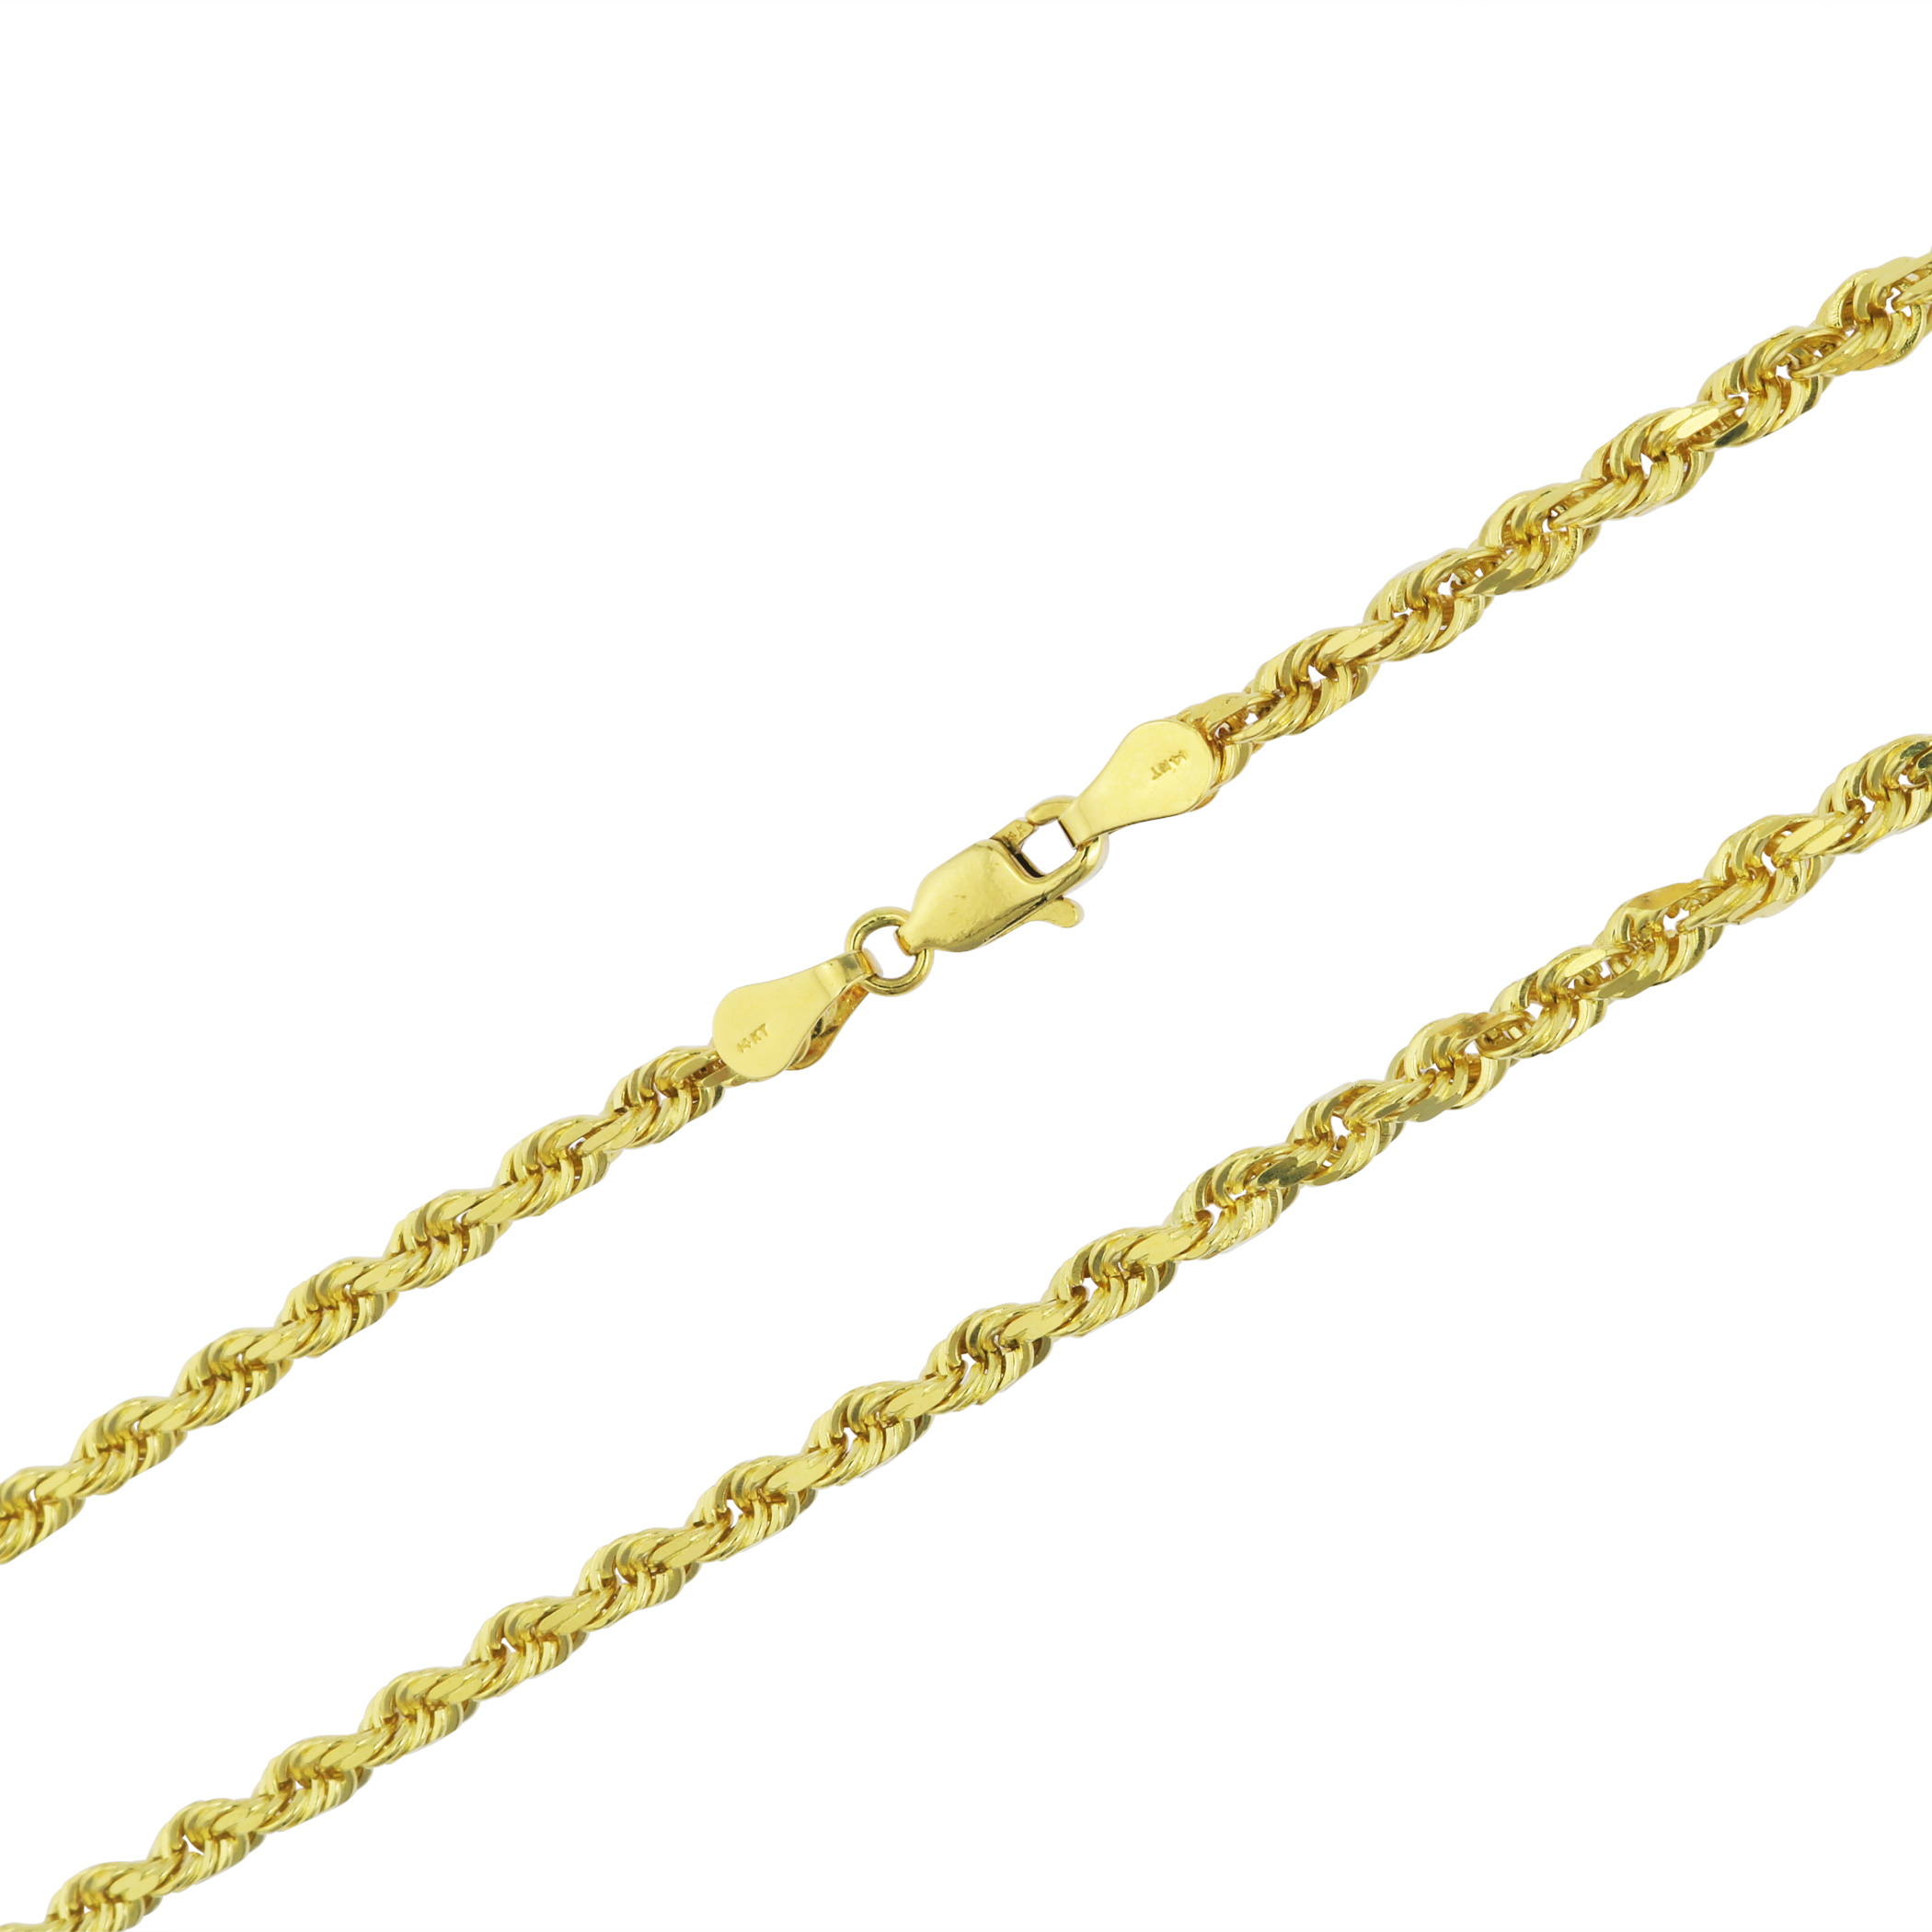 31db7095cbcc3 Details about 14K Solid Yellow Gold 3.5mm Italian Diamond Cut Rope Chain  Link Necklace 18